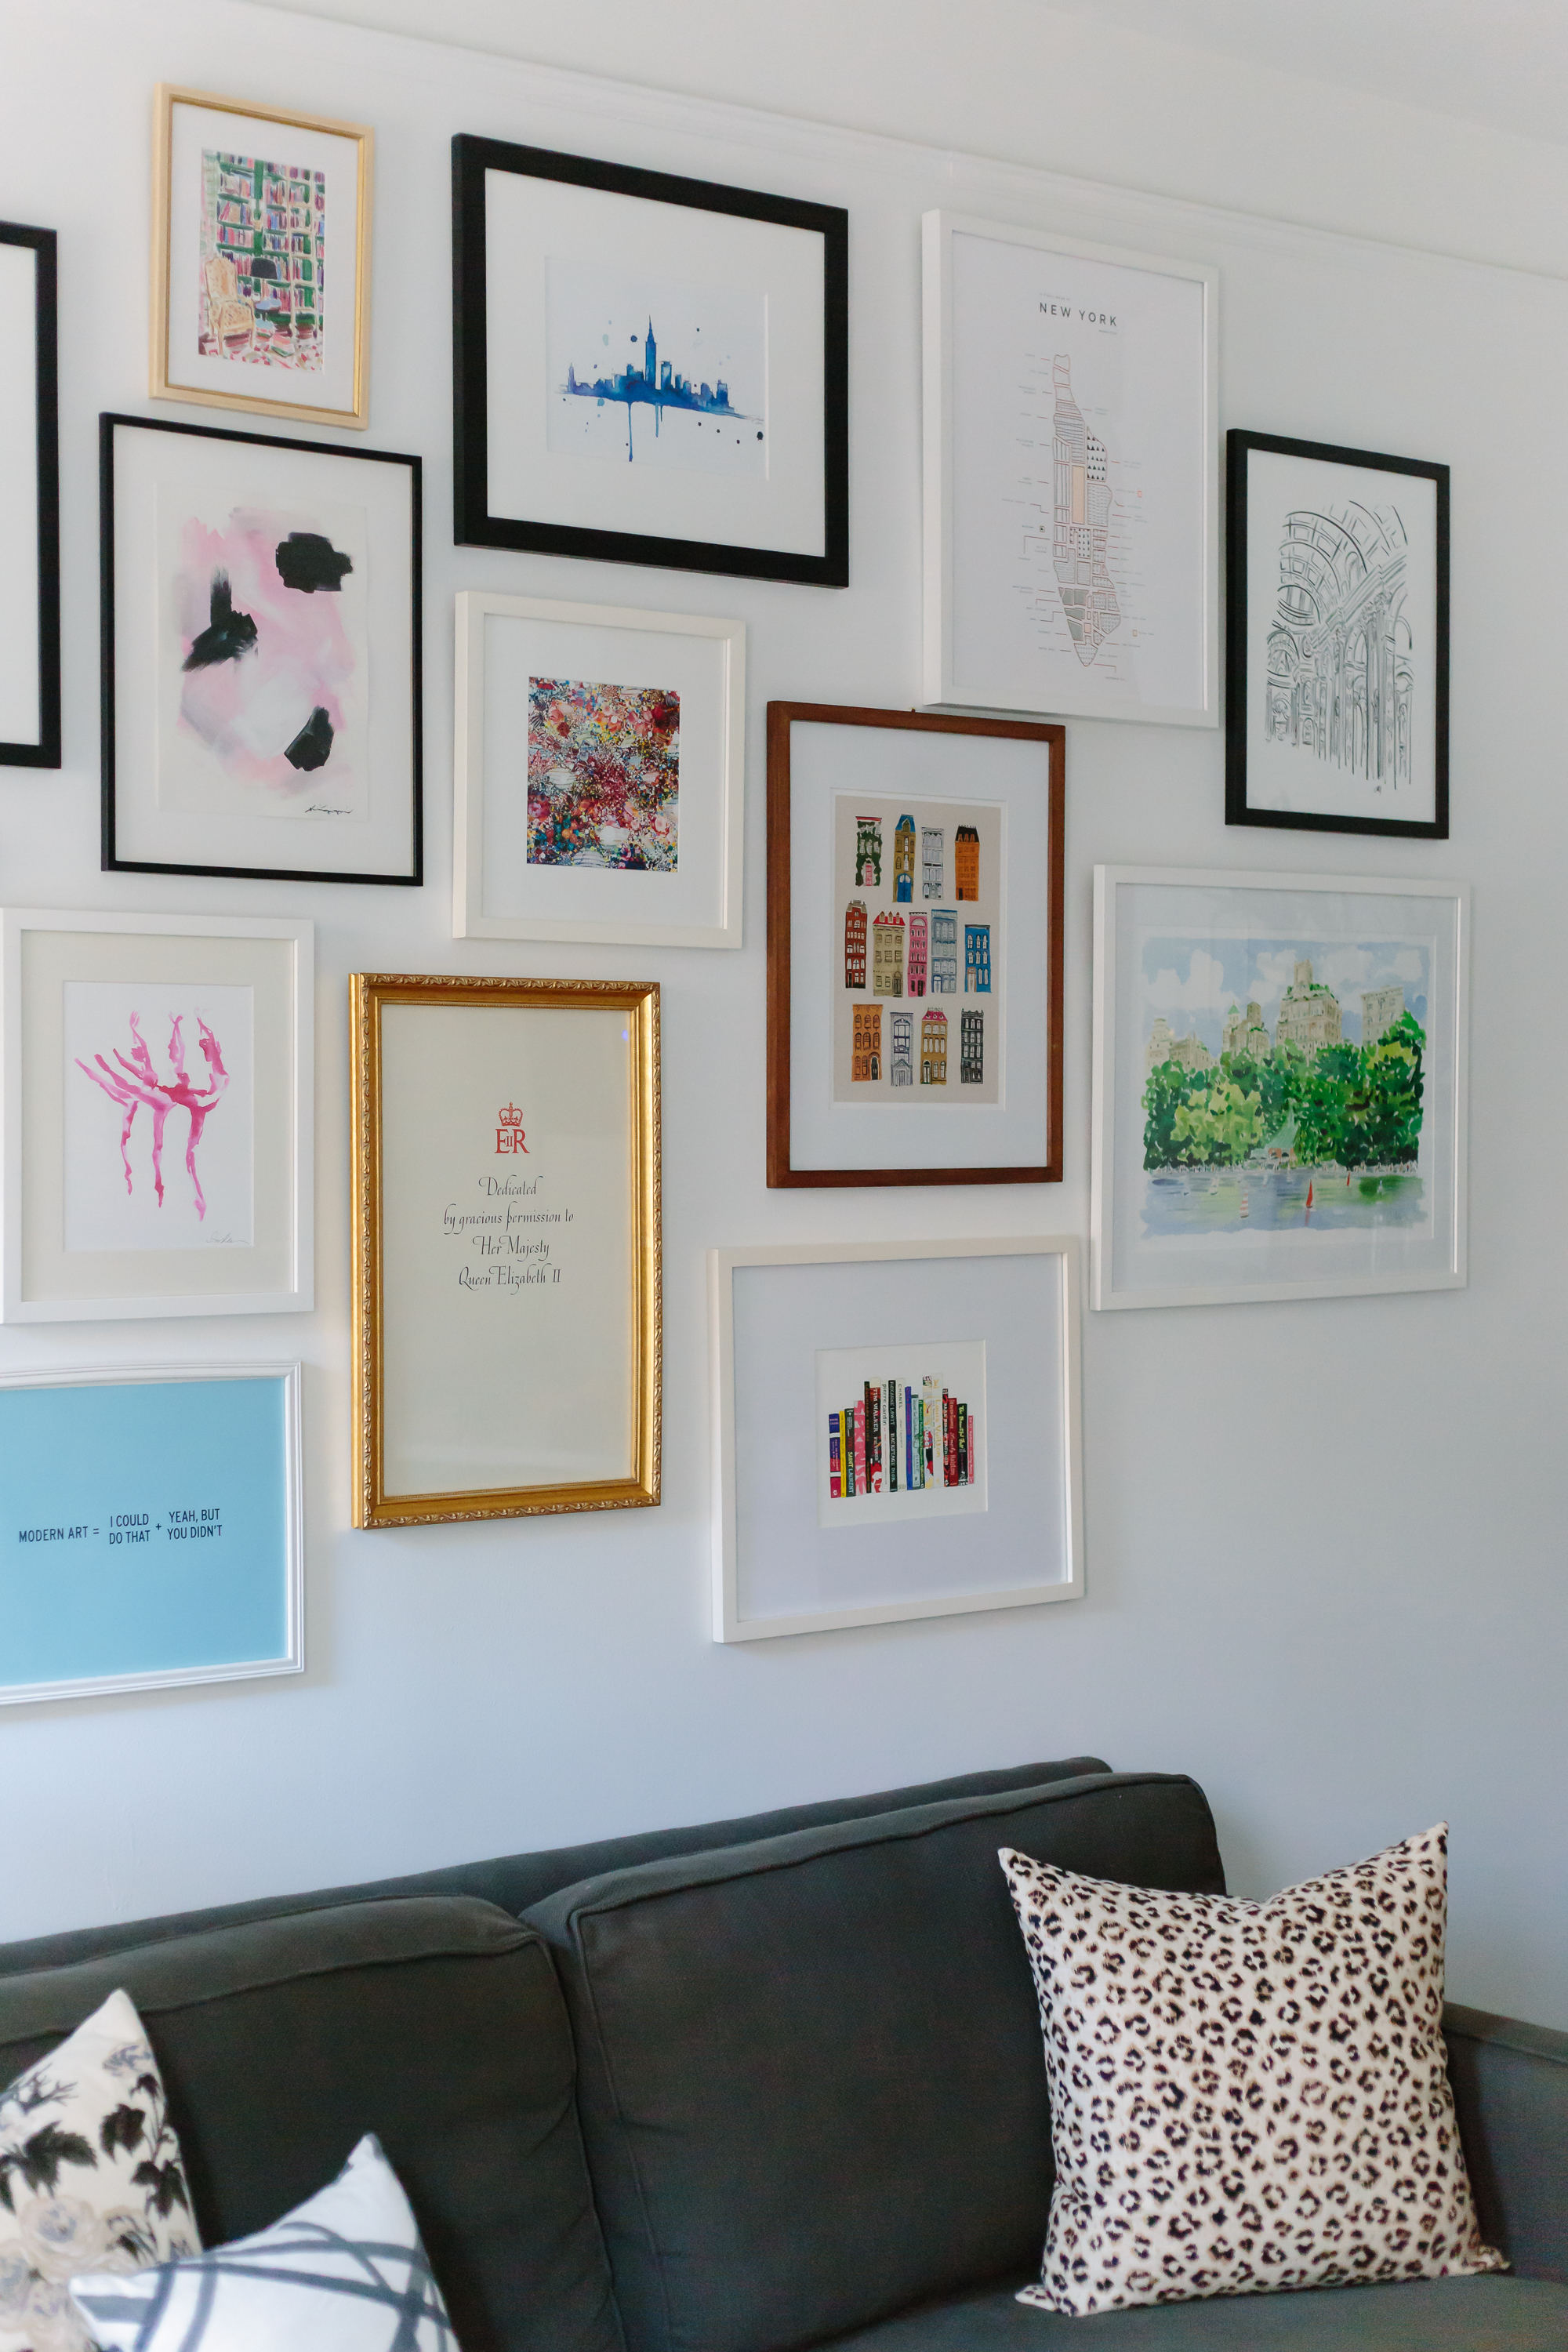 Eclectic gallery wall and step by step instructions for creating one